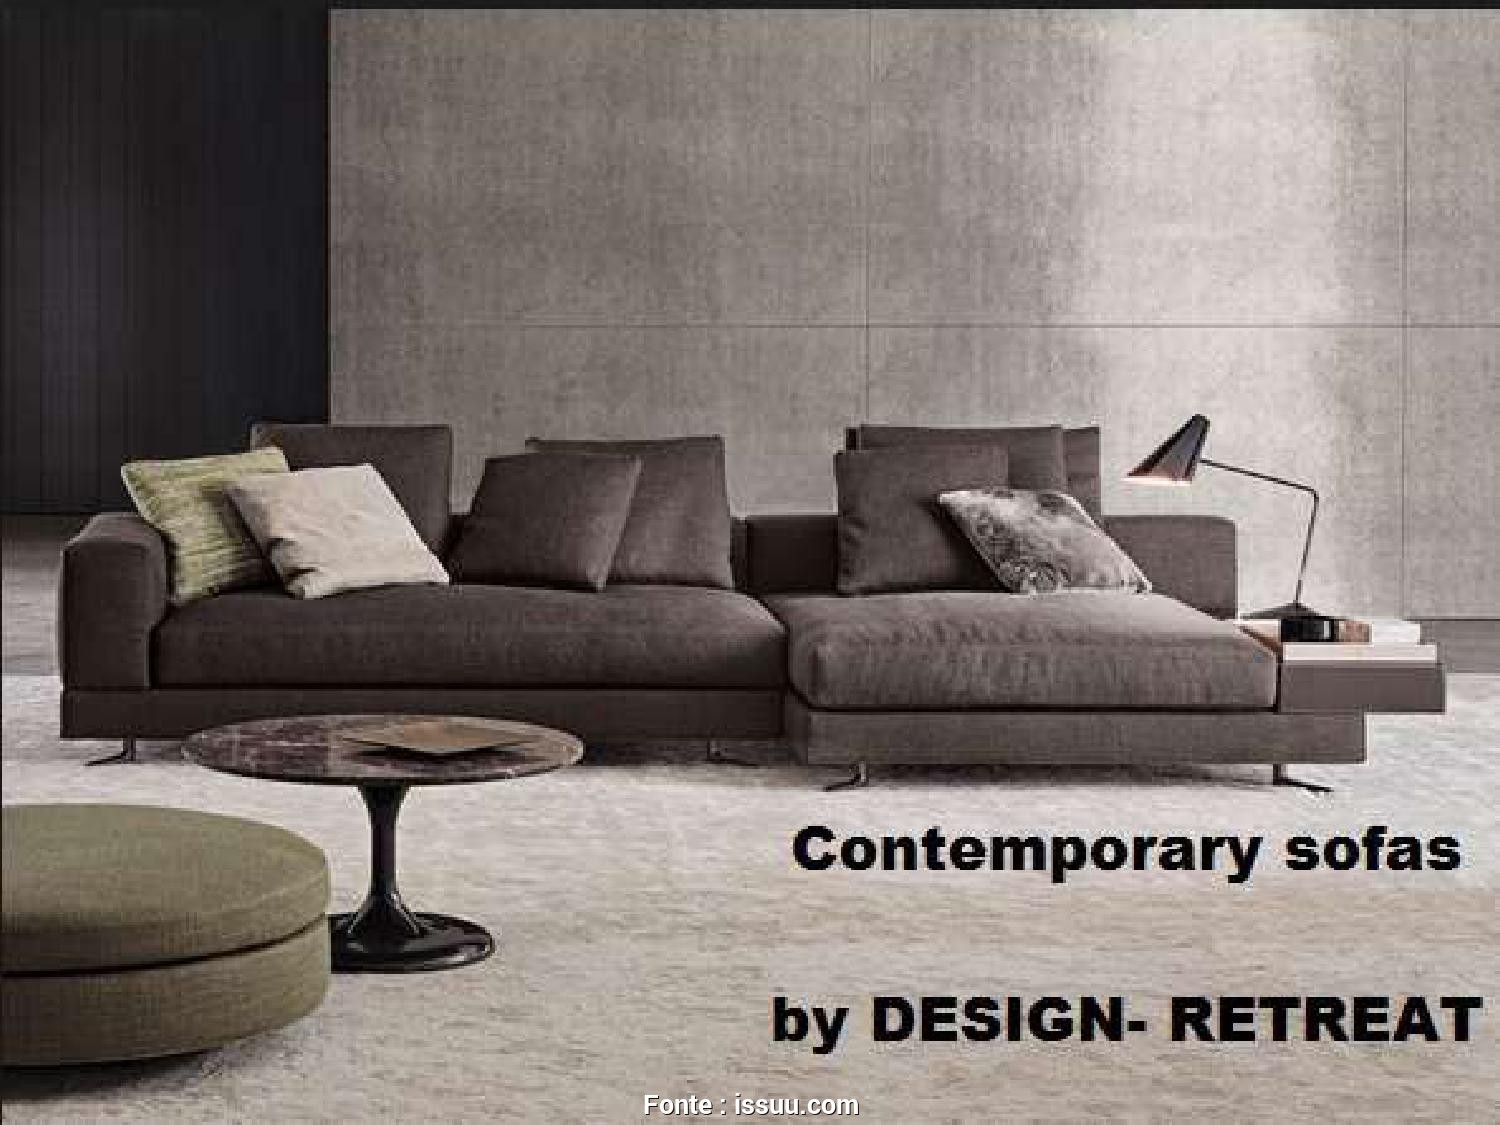 Divani Busnelli Mike, Divertente Systematic Break Down Of Contemporary Sofas